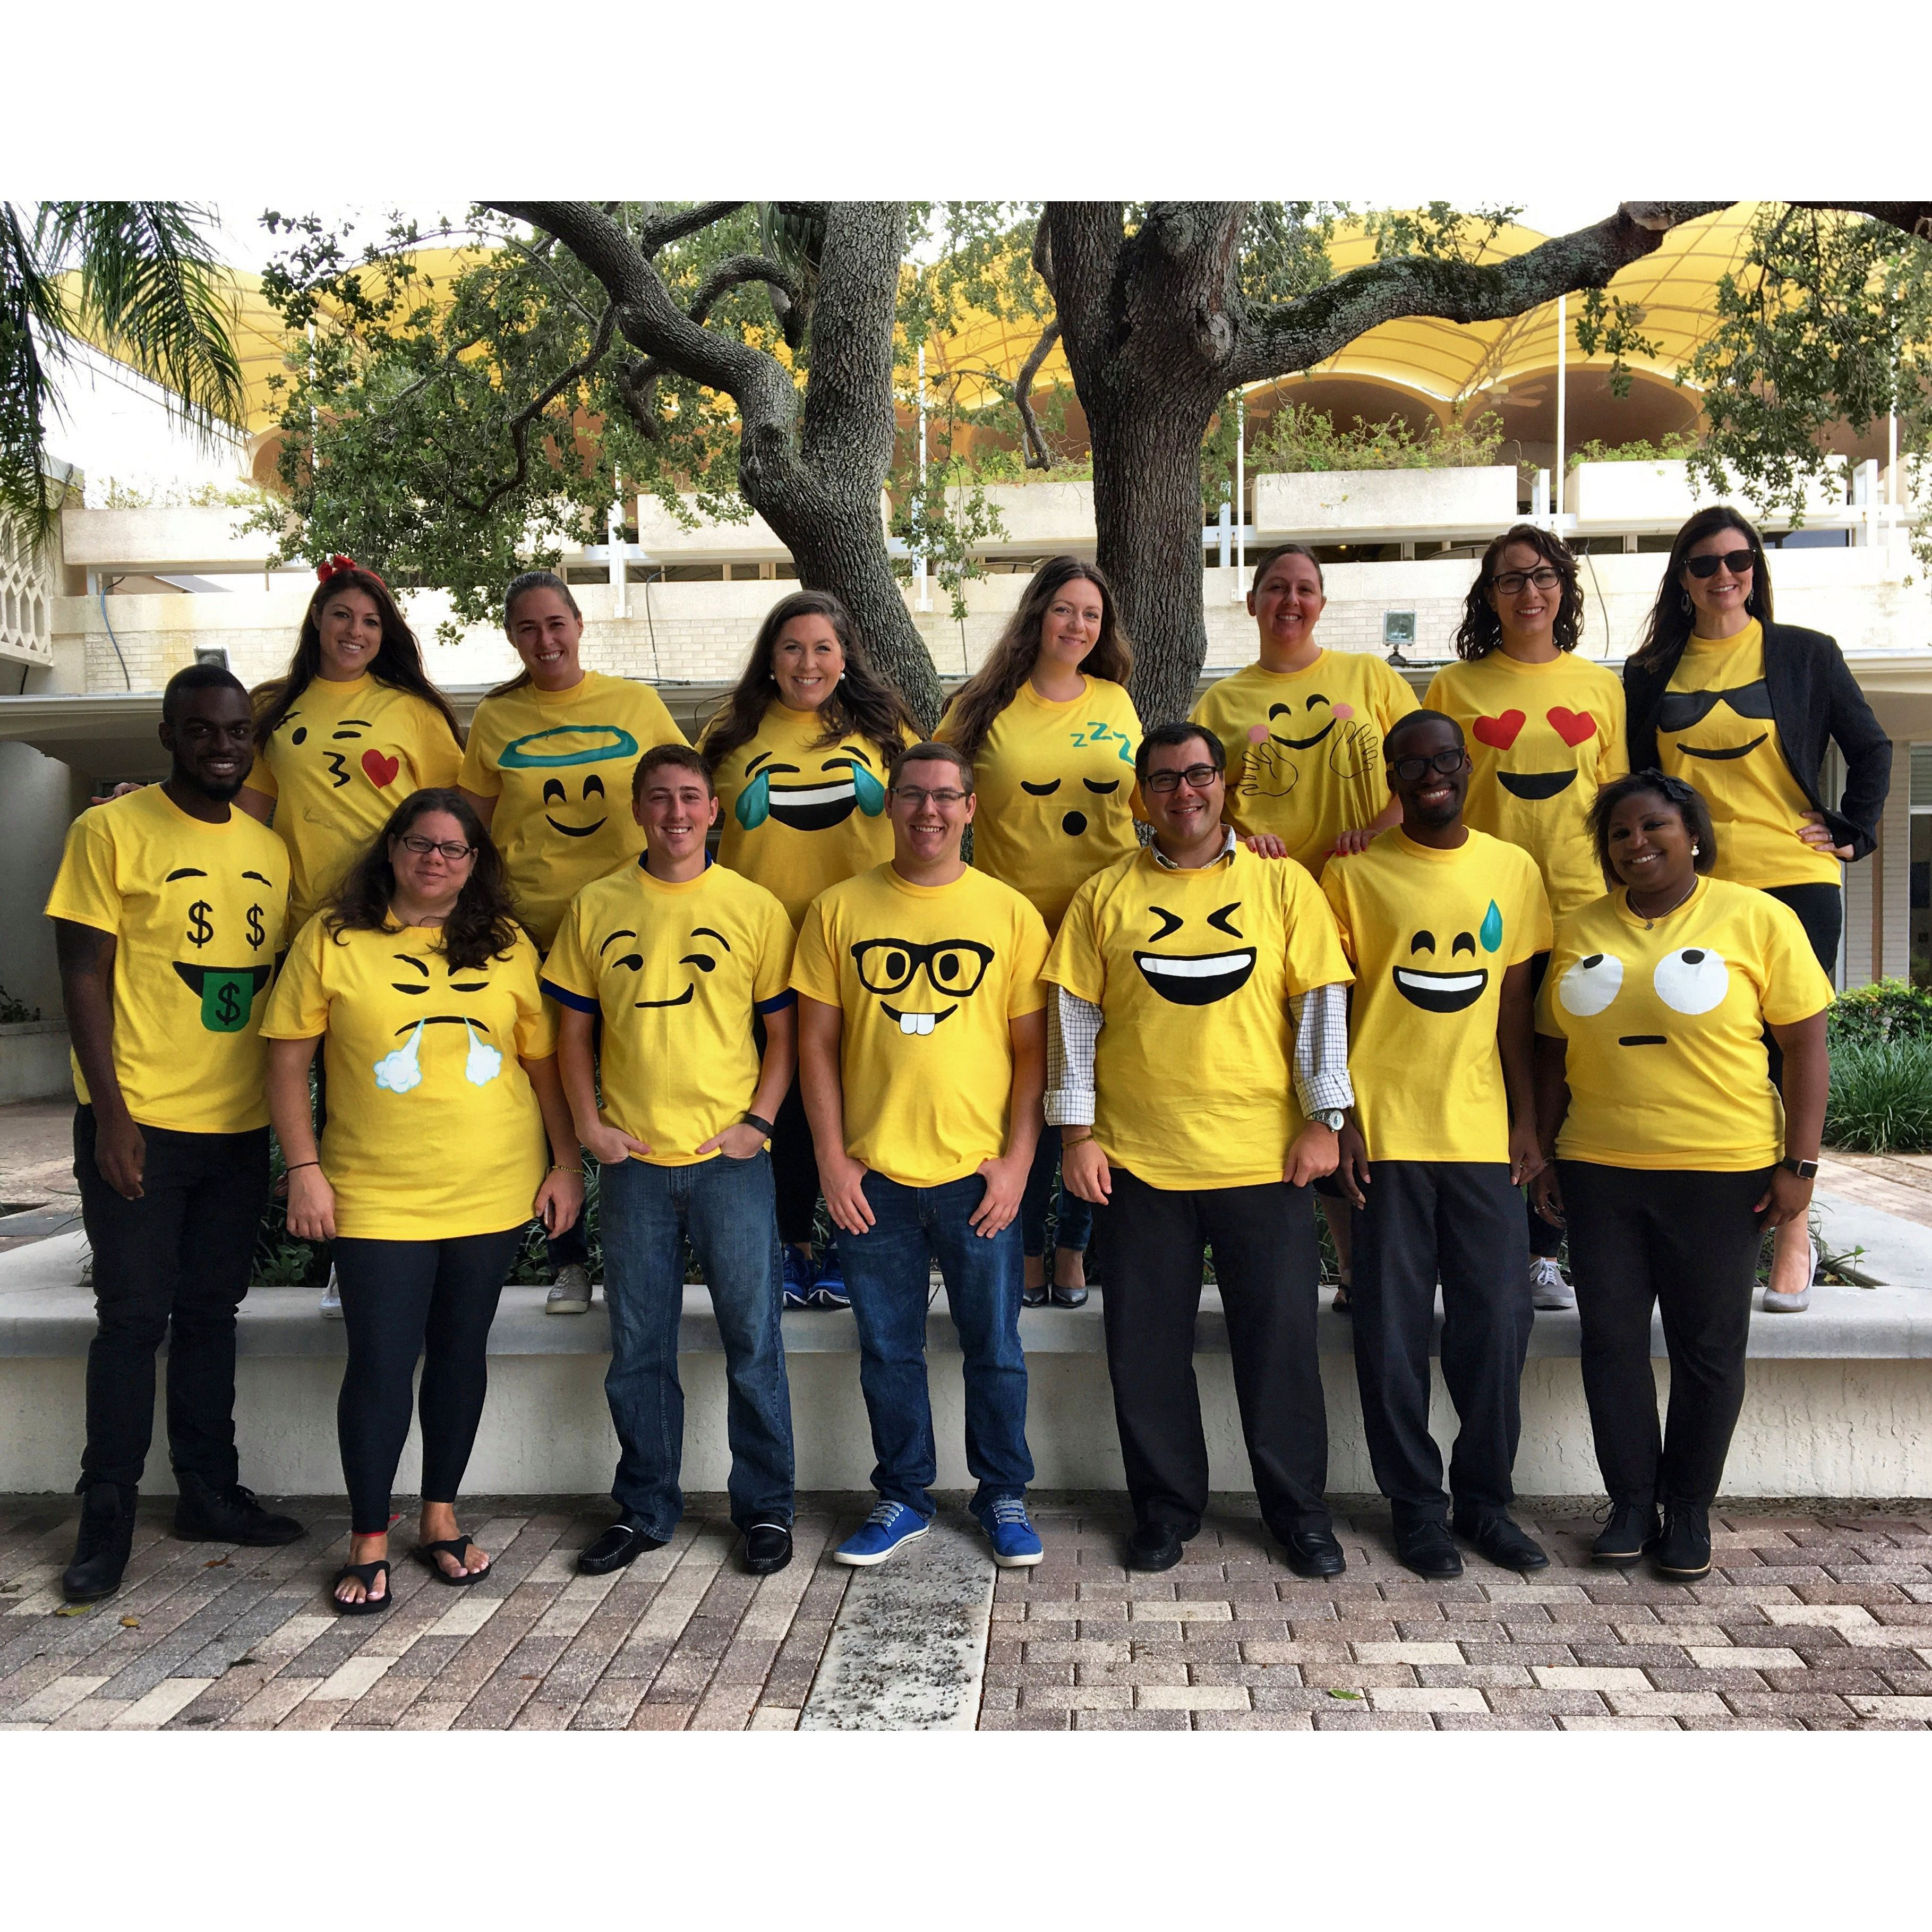 Easy Emoji Shirts For A Great Staff Costume Yellow From Hobby Lobby And Acrylic Pint The Emojis Halloween DIY Groupcostume